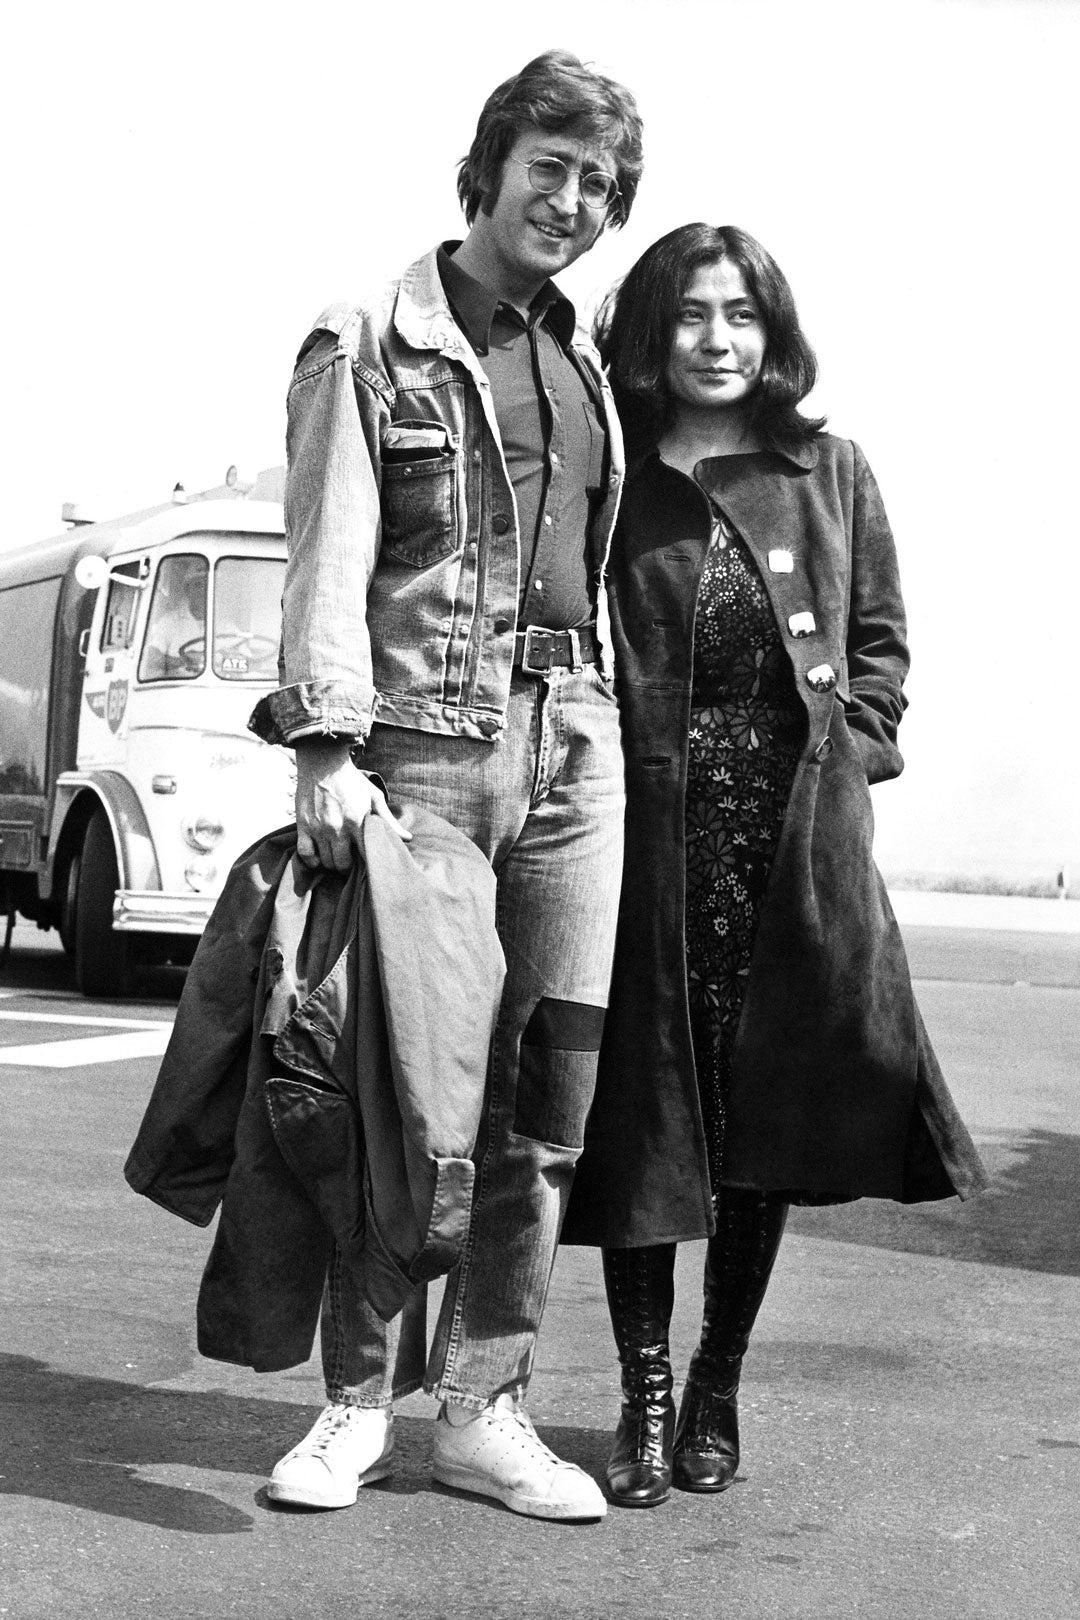 Black and white photograph of John Lennon and Yoko standing together in front of bus at airport